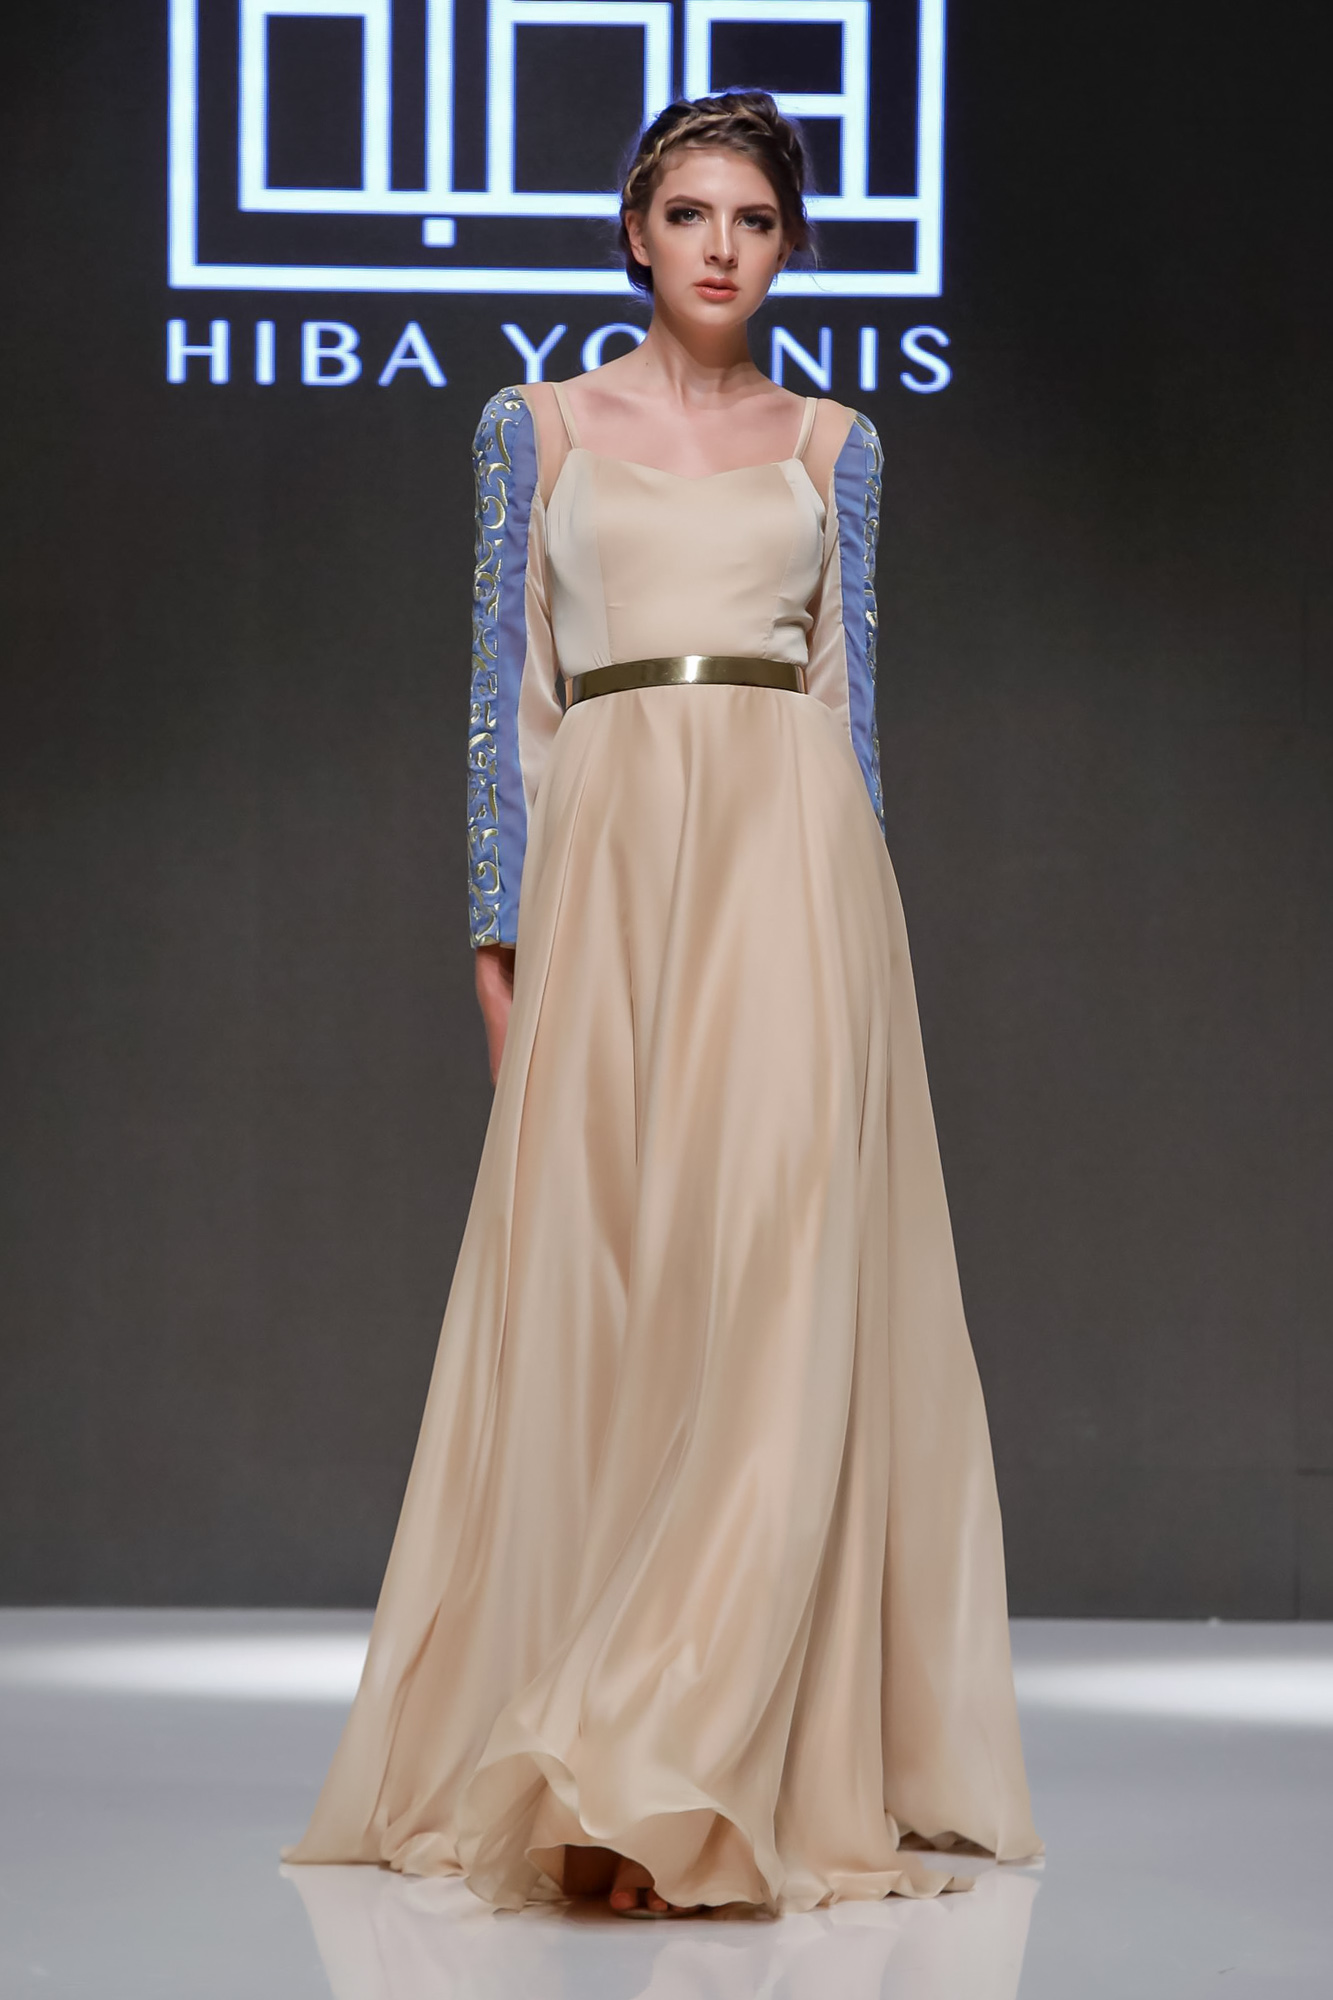 Hiba Younis Resort 2020 Collection Arab Fashion Week in Dubai